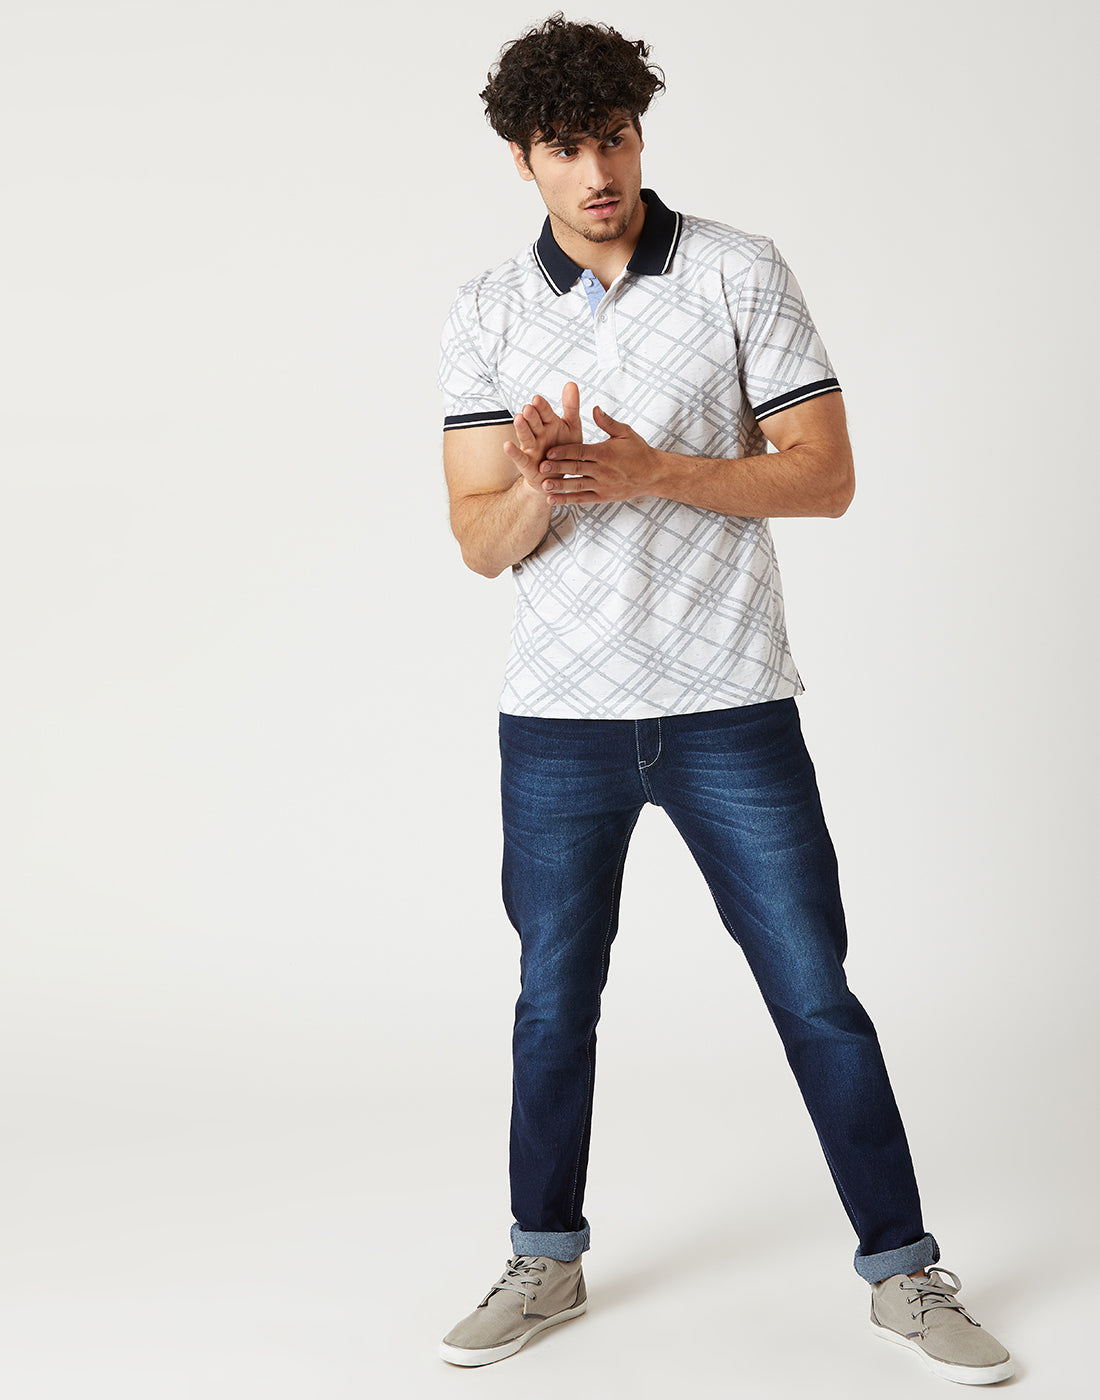 Octave Men White Polo Tshirt